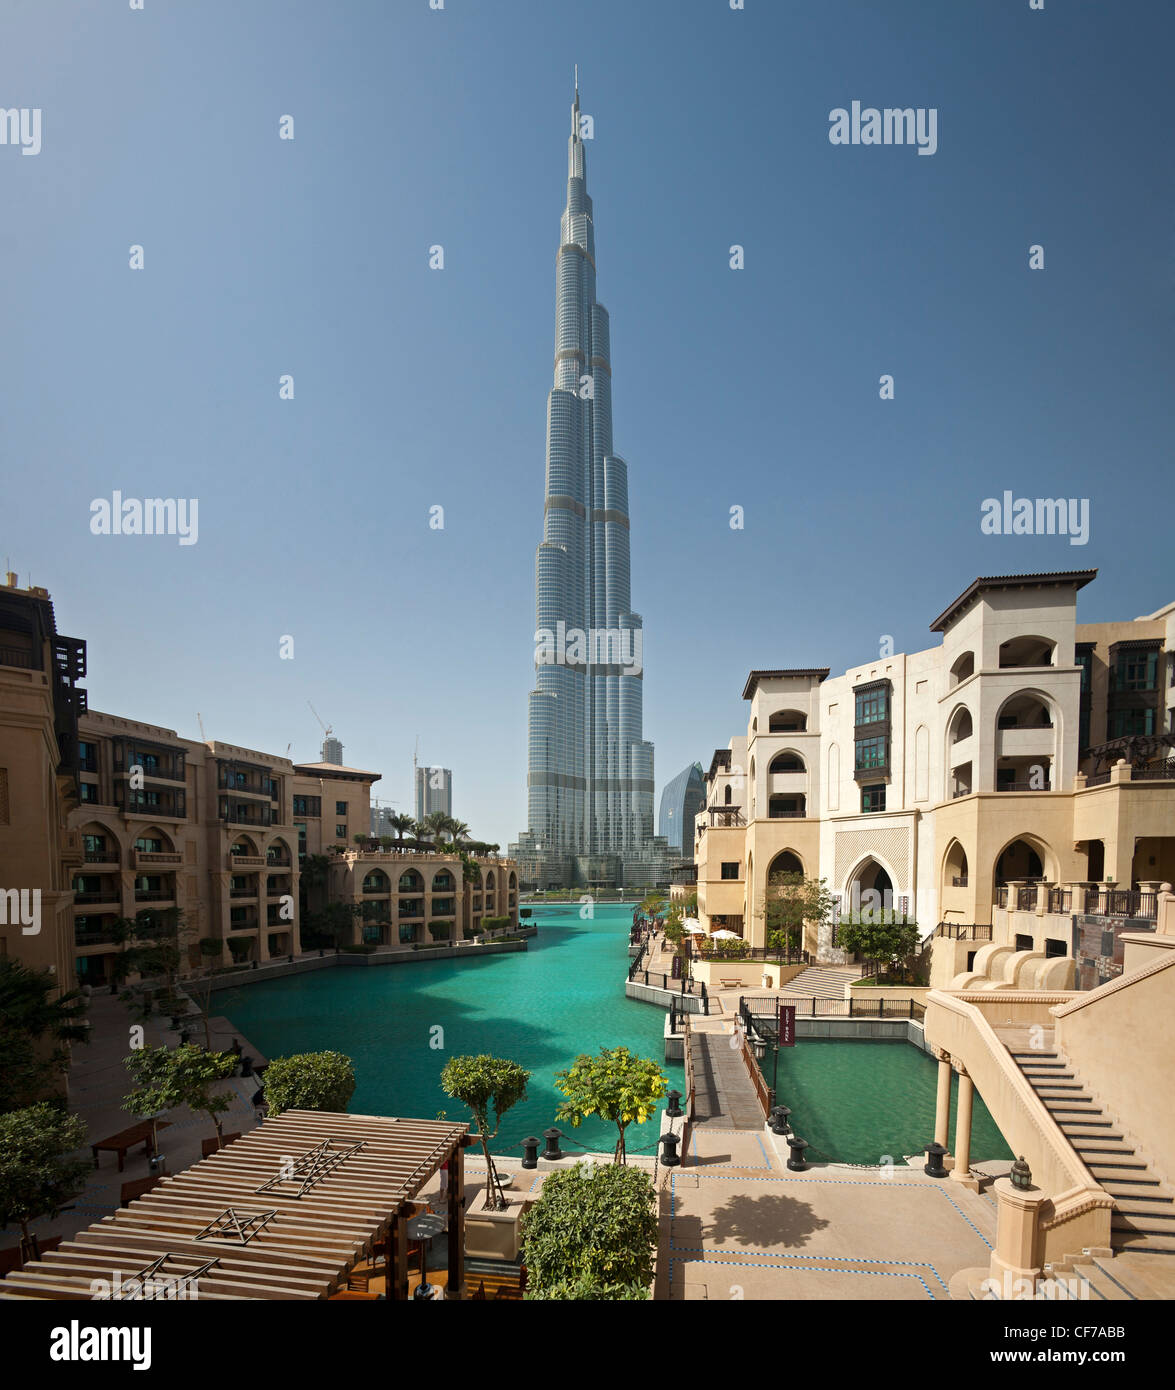 the burj khalifa tower seen from the old town island area dubai stock photo royalty free. Black Bedroom Furniture Sets. Home Design Ideas